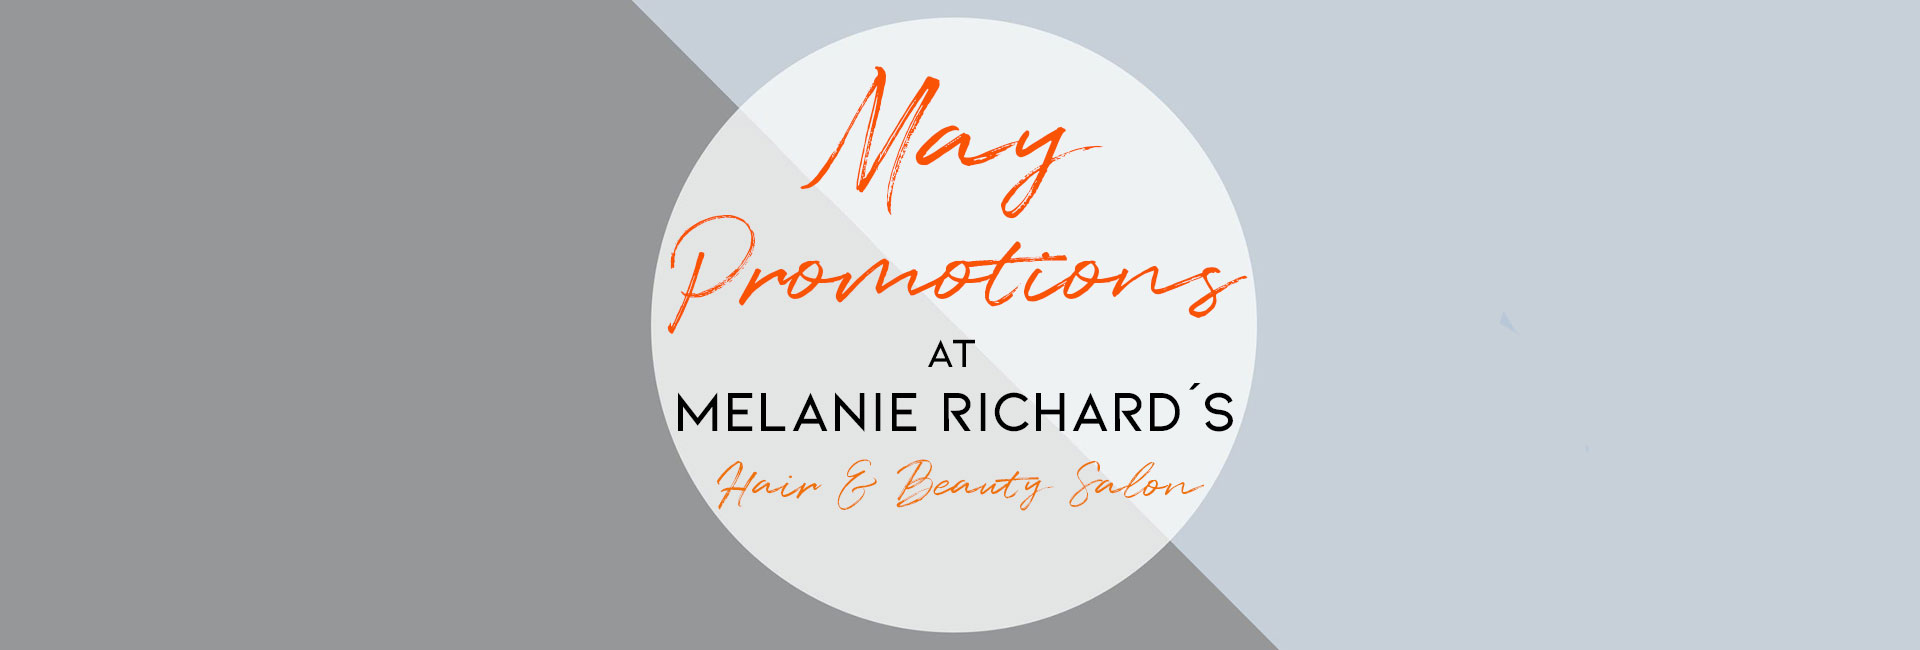 Beauty Promotions & Deals In Peterborough At Melanie Richard's Hair & Beauty Salon